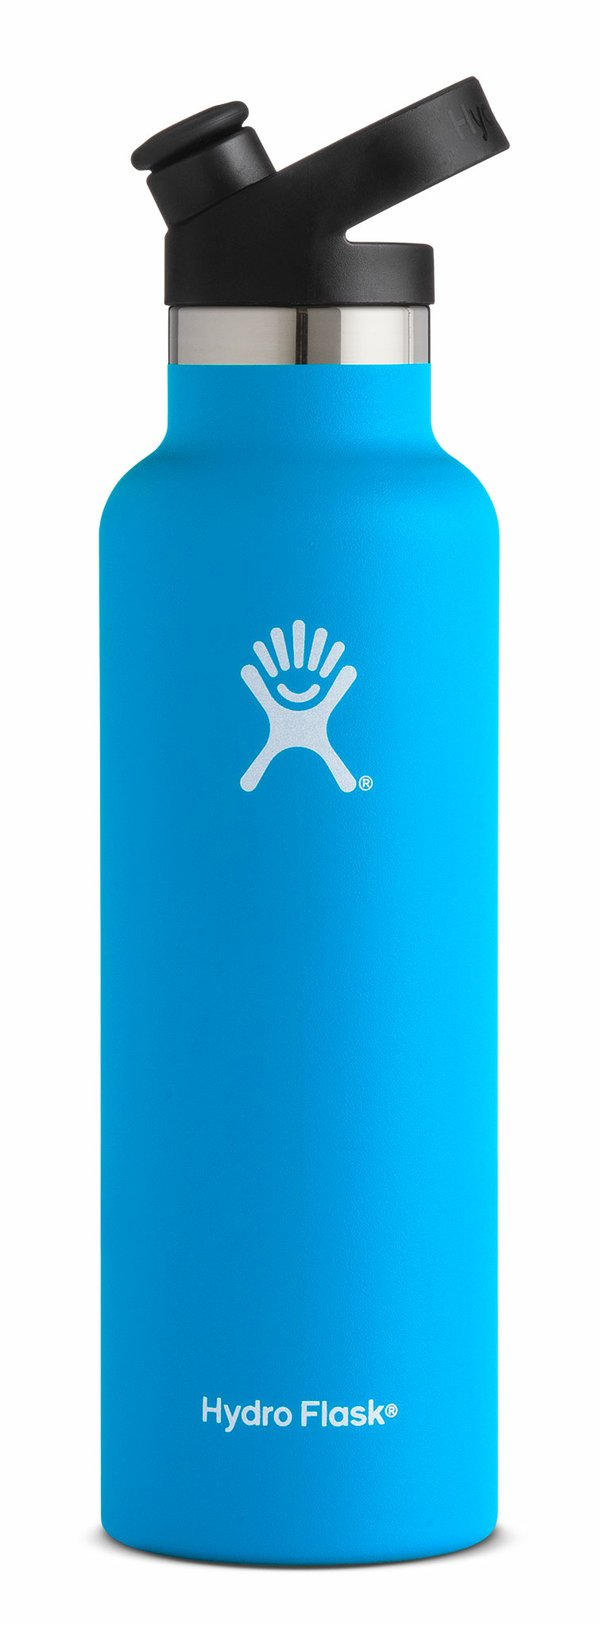 Hydro-Flask-21-oz-Standard-Mouth-with-Sport-Cap-Pacific.jpg